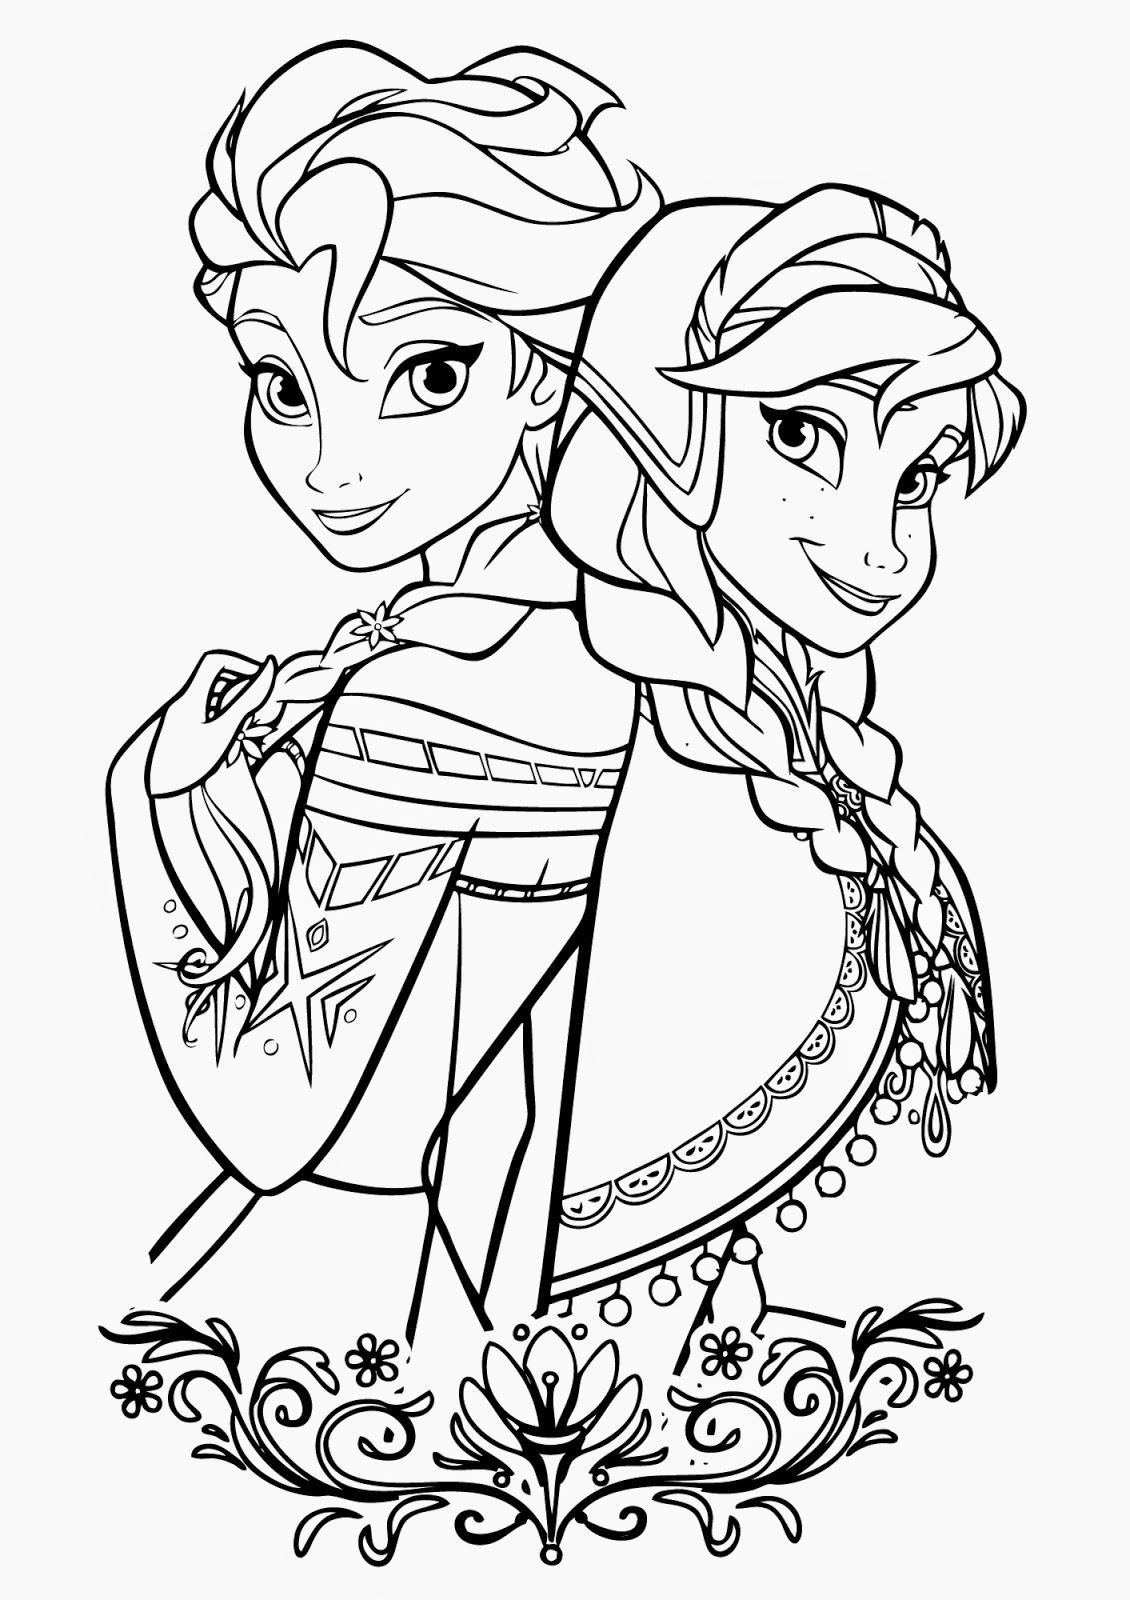 frozen free online coloring pages - photo#7